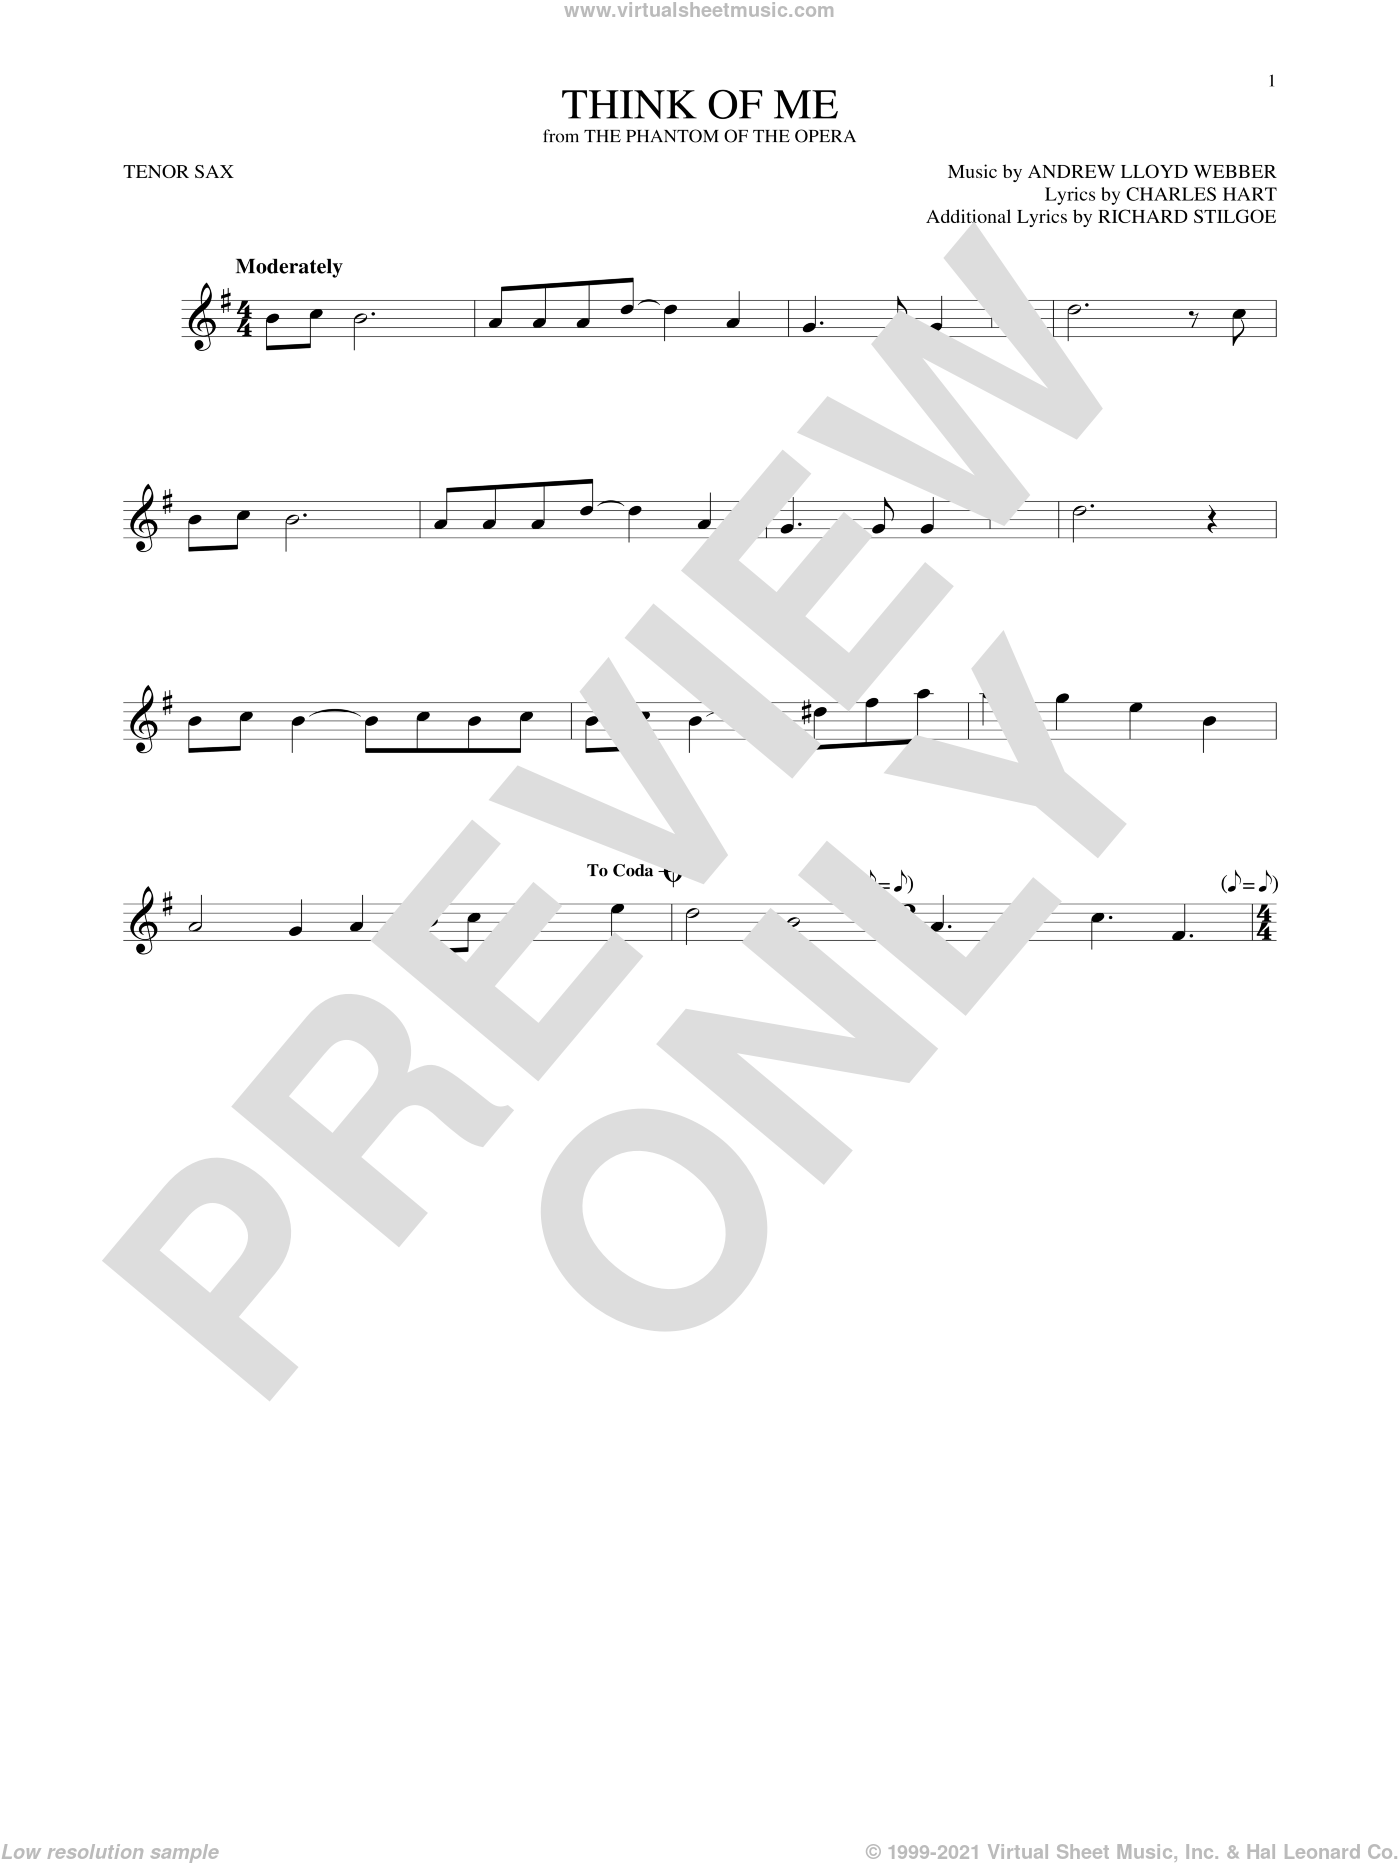 Think Of Me sheet music for tenor saxophone solo by Andrew Lloyd Webber, Charles Hart and Richard Stilgoe, intermediate skill level